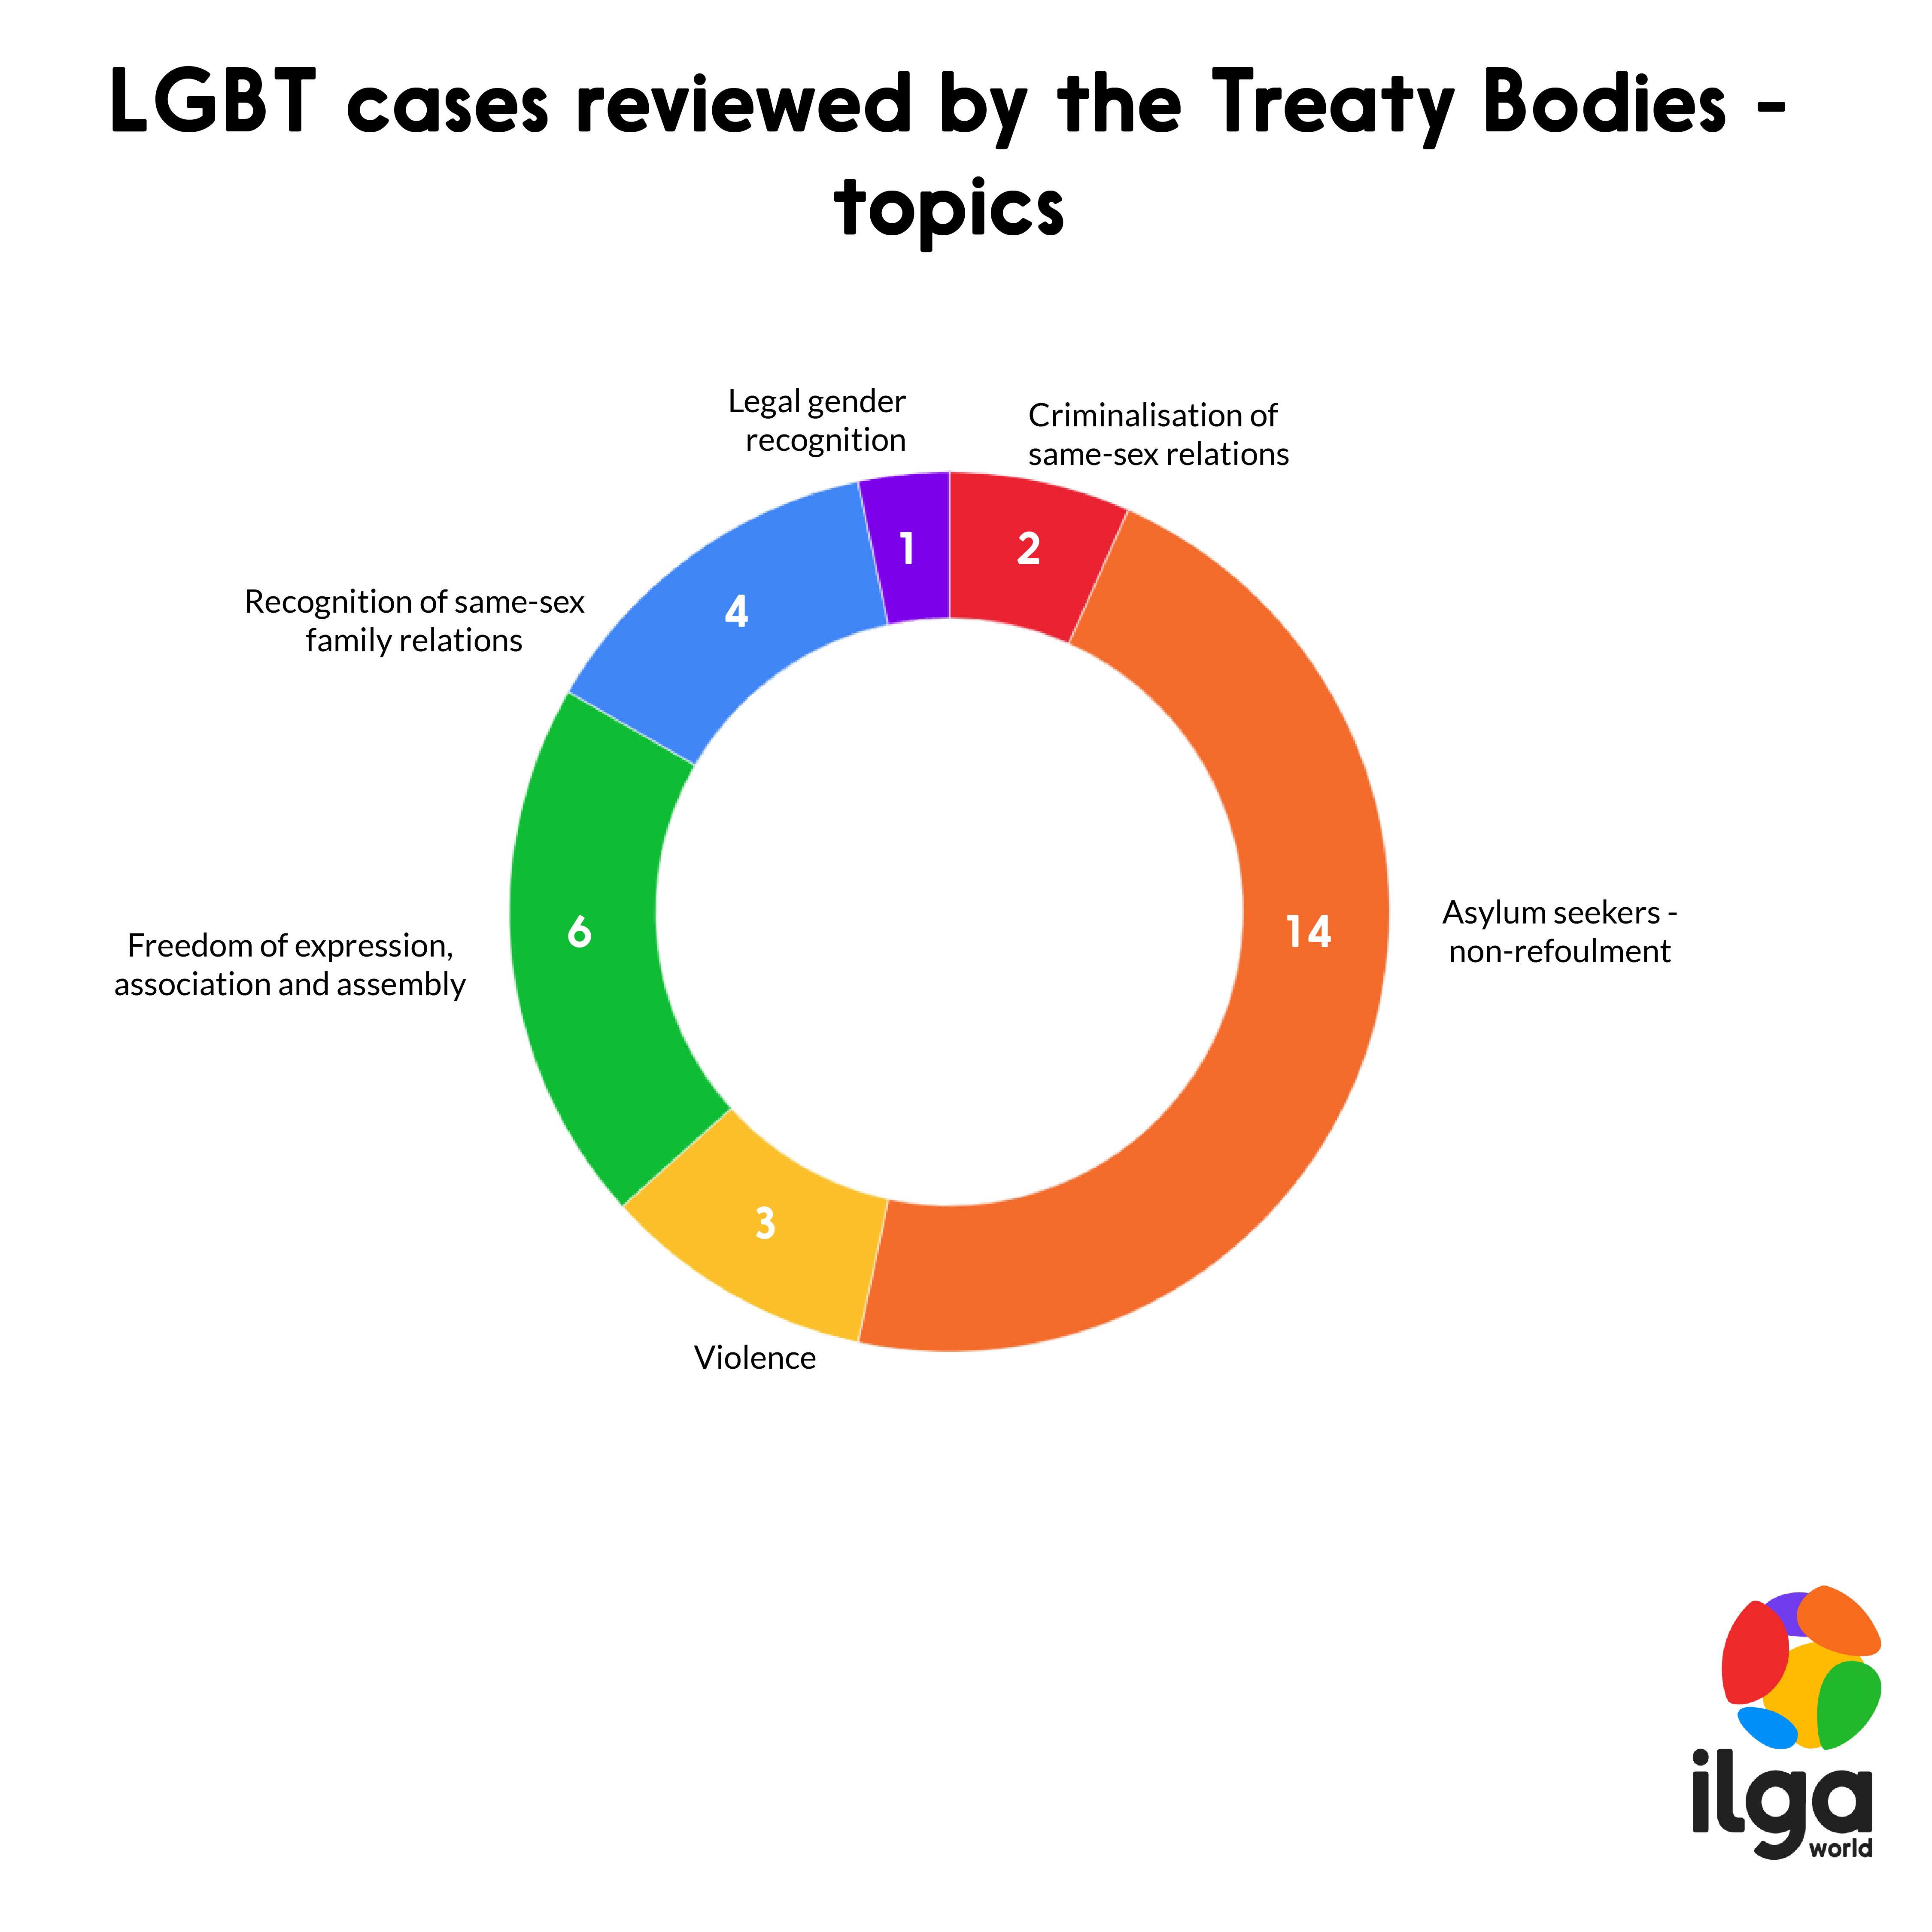 This image shows which topics were covered when the UN Treaty Bodies analysed LGBT cases